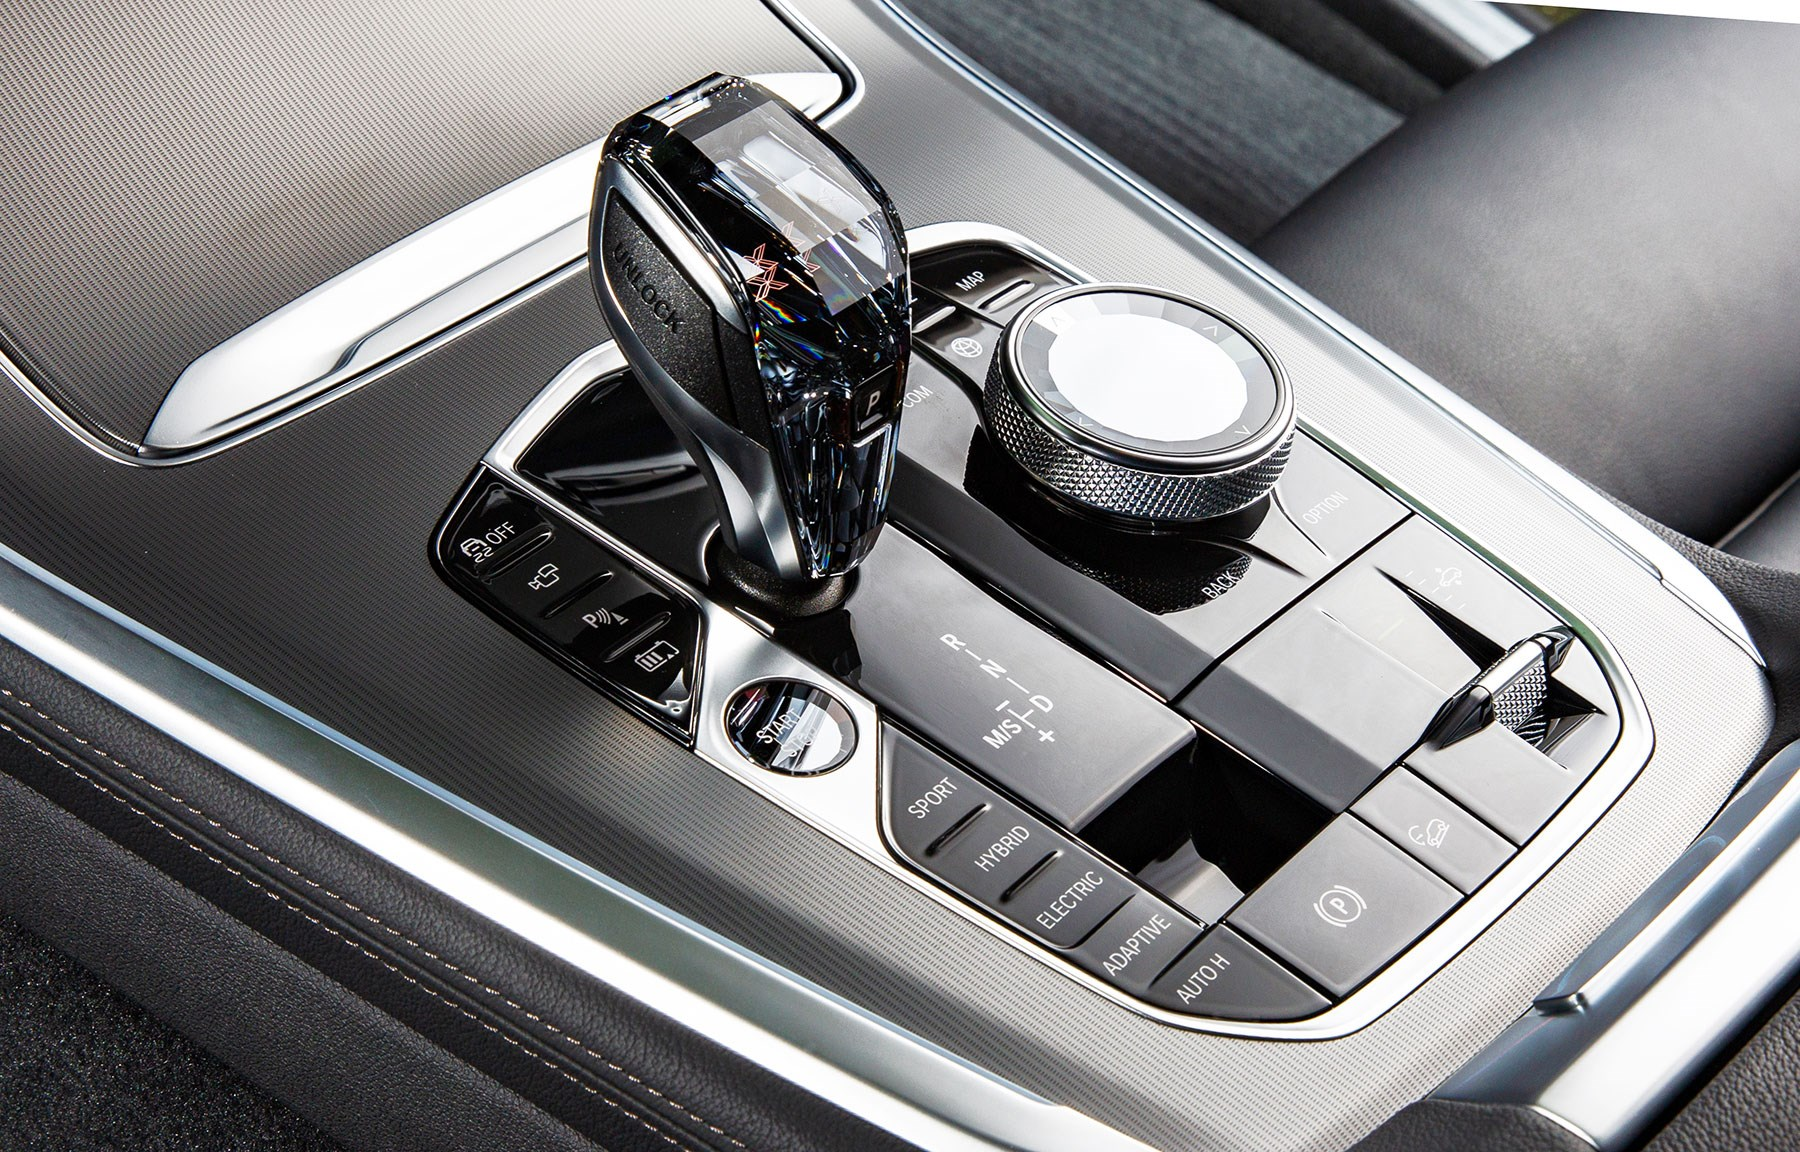 BMW X5 45e plug-in hybrid interior has buttons to let you select full electric, hybrid or sport modes